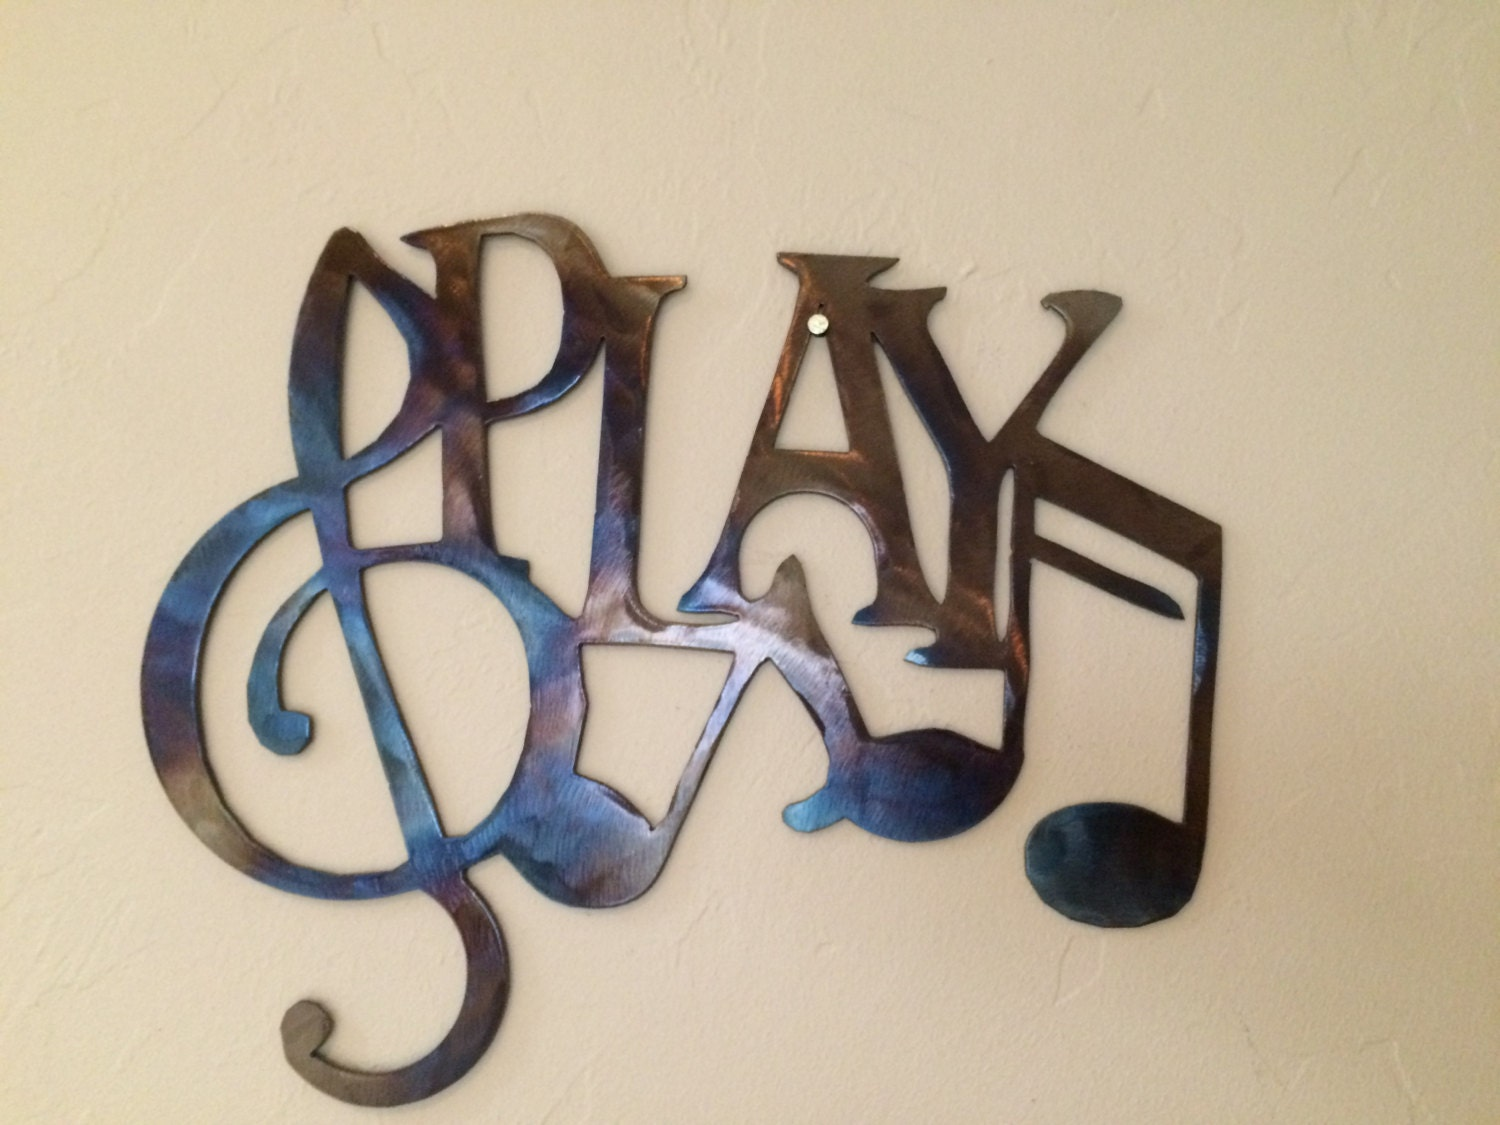 Wall Decorations Music Notes : Play w music notes metal wall art decor by cre ivemetaldesigns